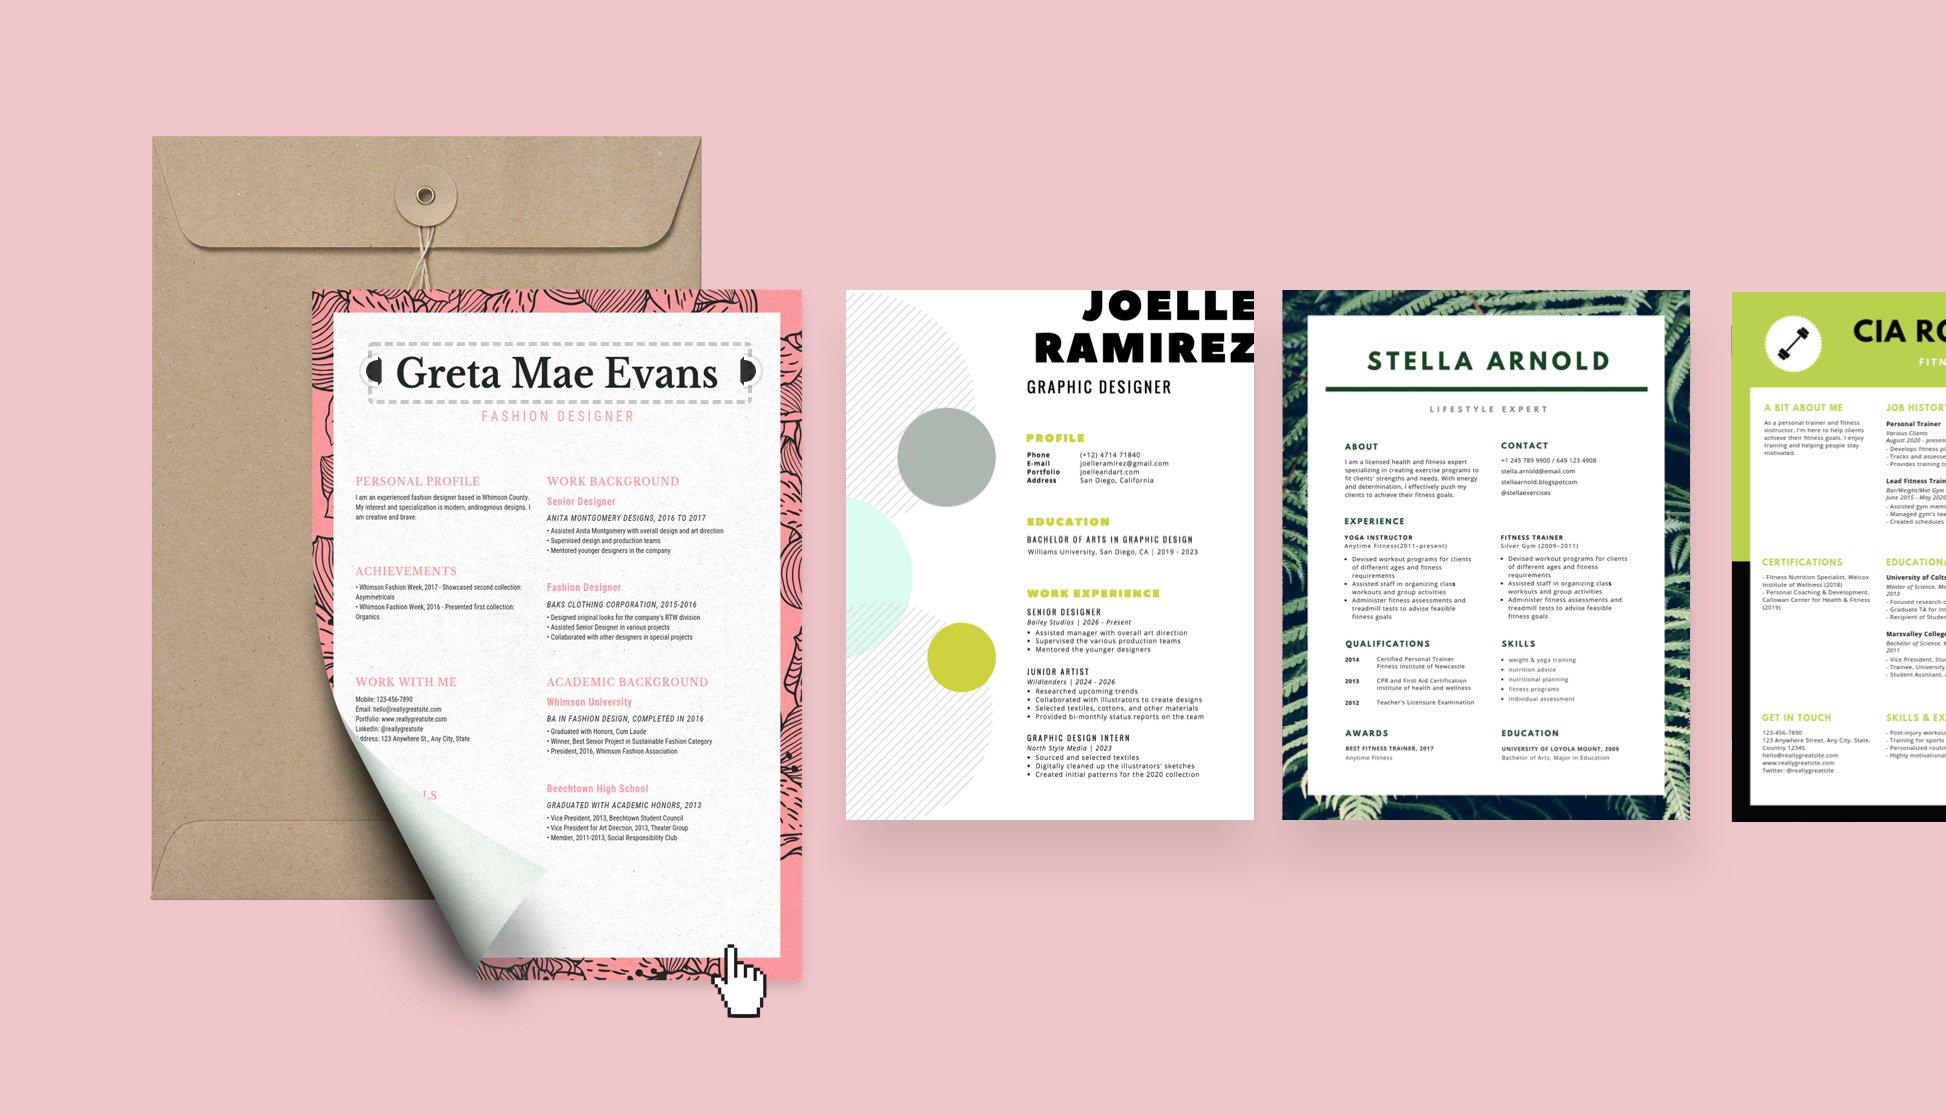 91 Nice Make Me A Resume Online Free for Design